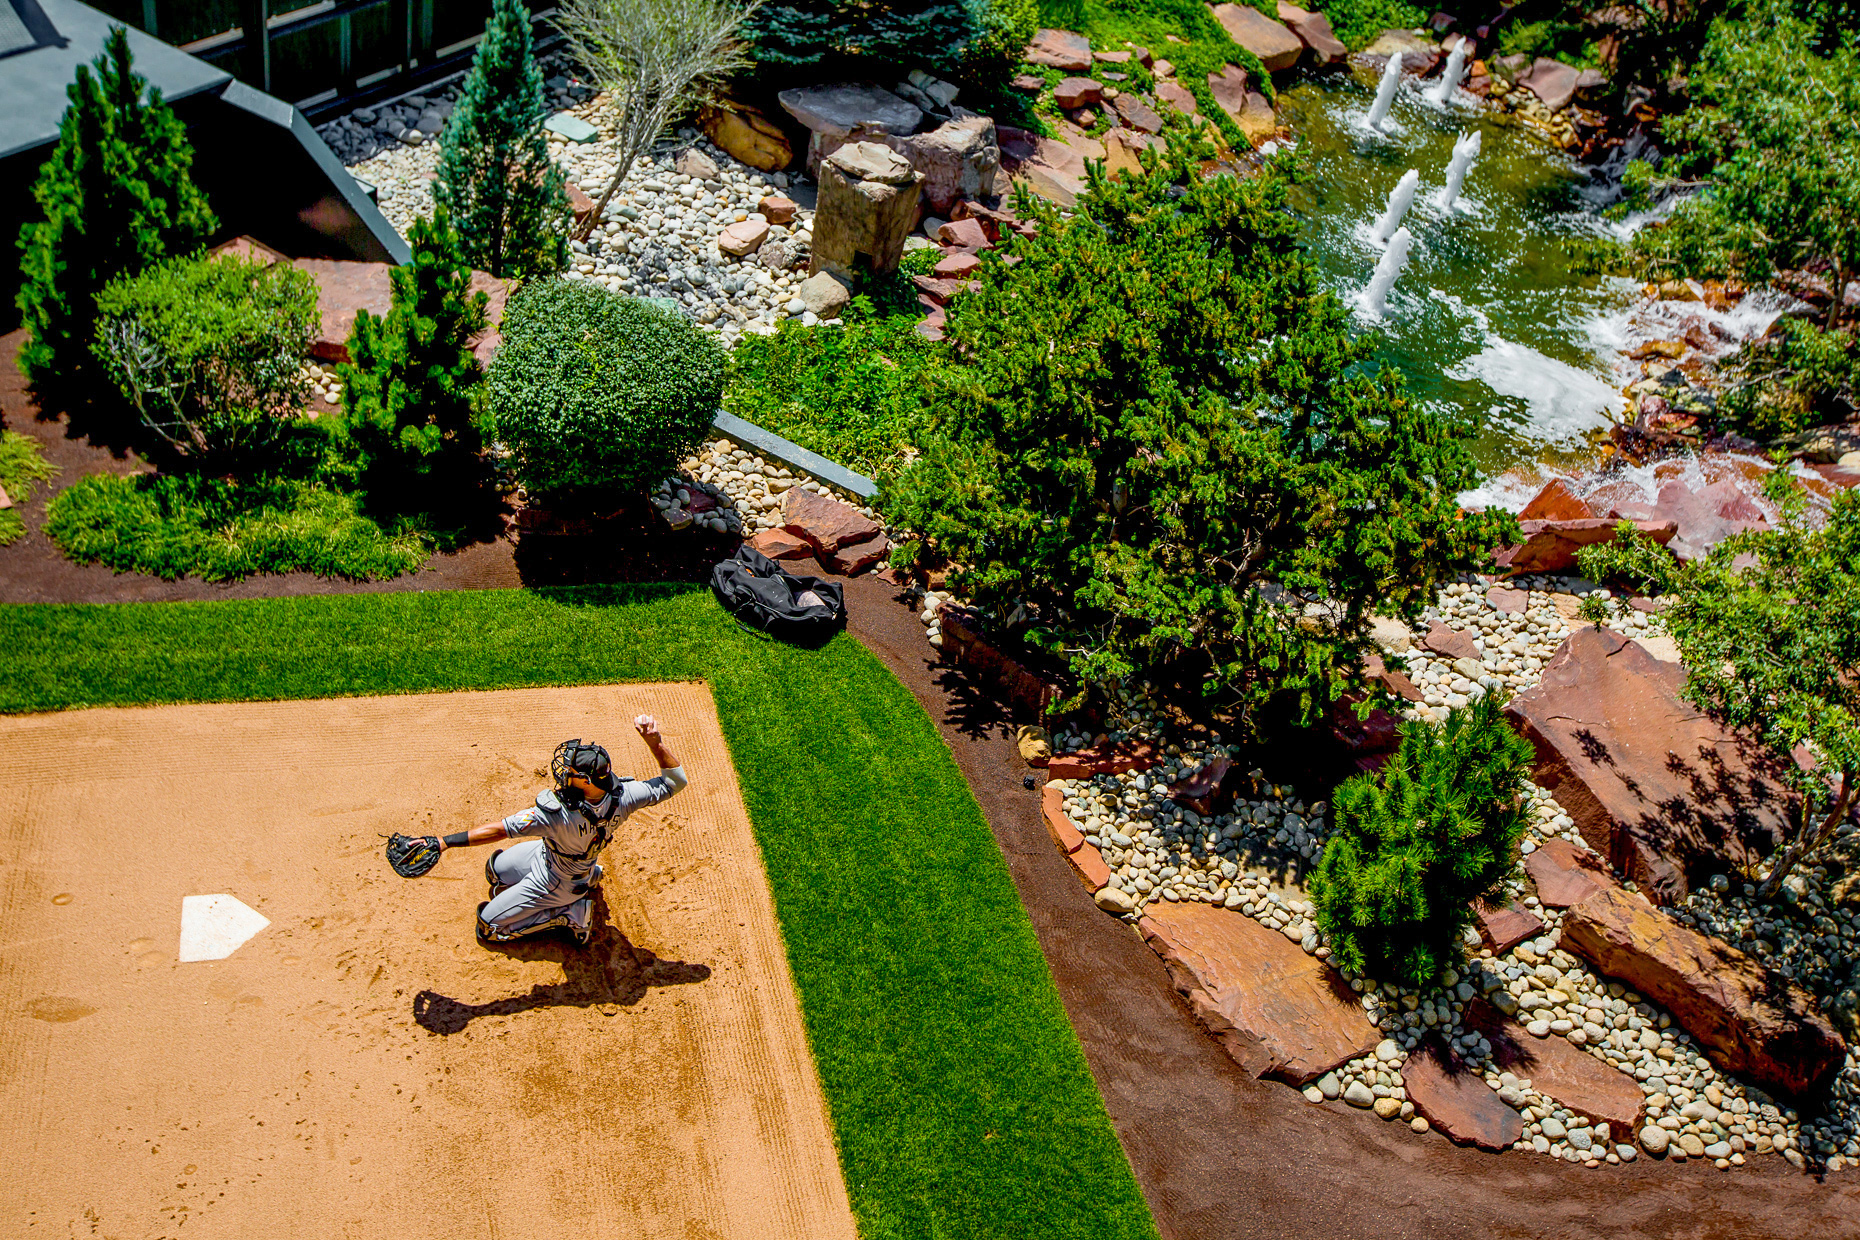 chip litherland lock and land rockies sports photography denver 0002.JPG